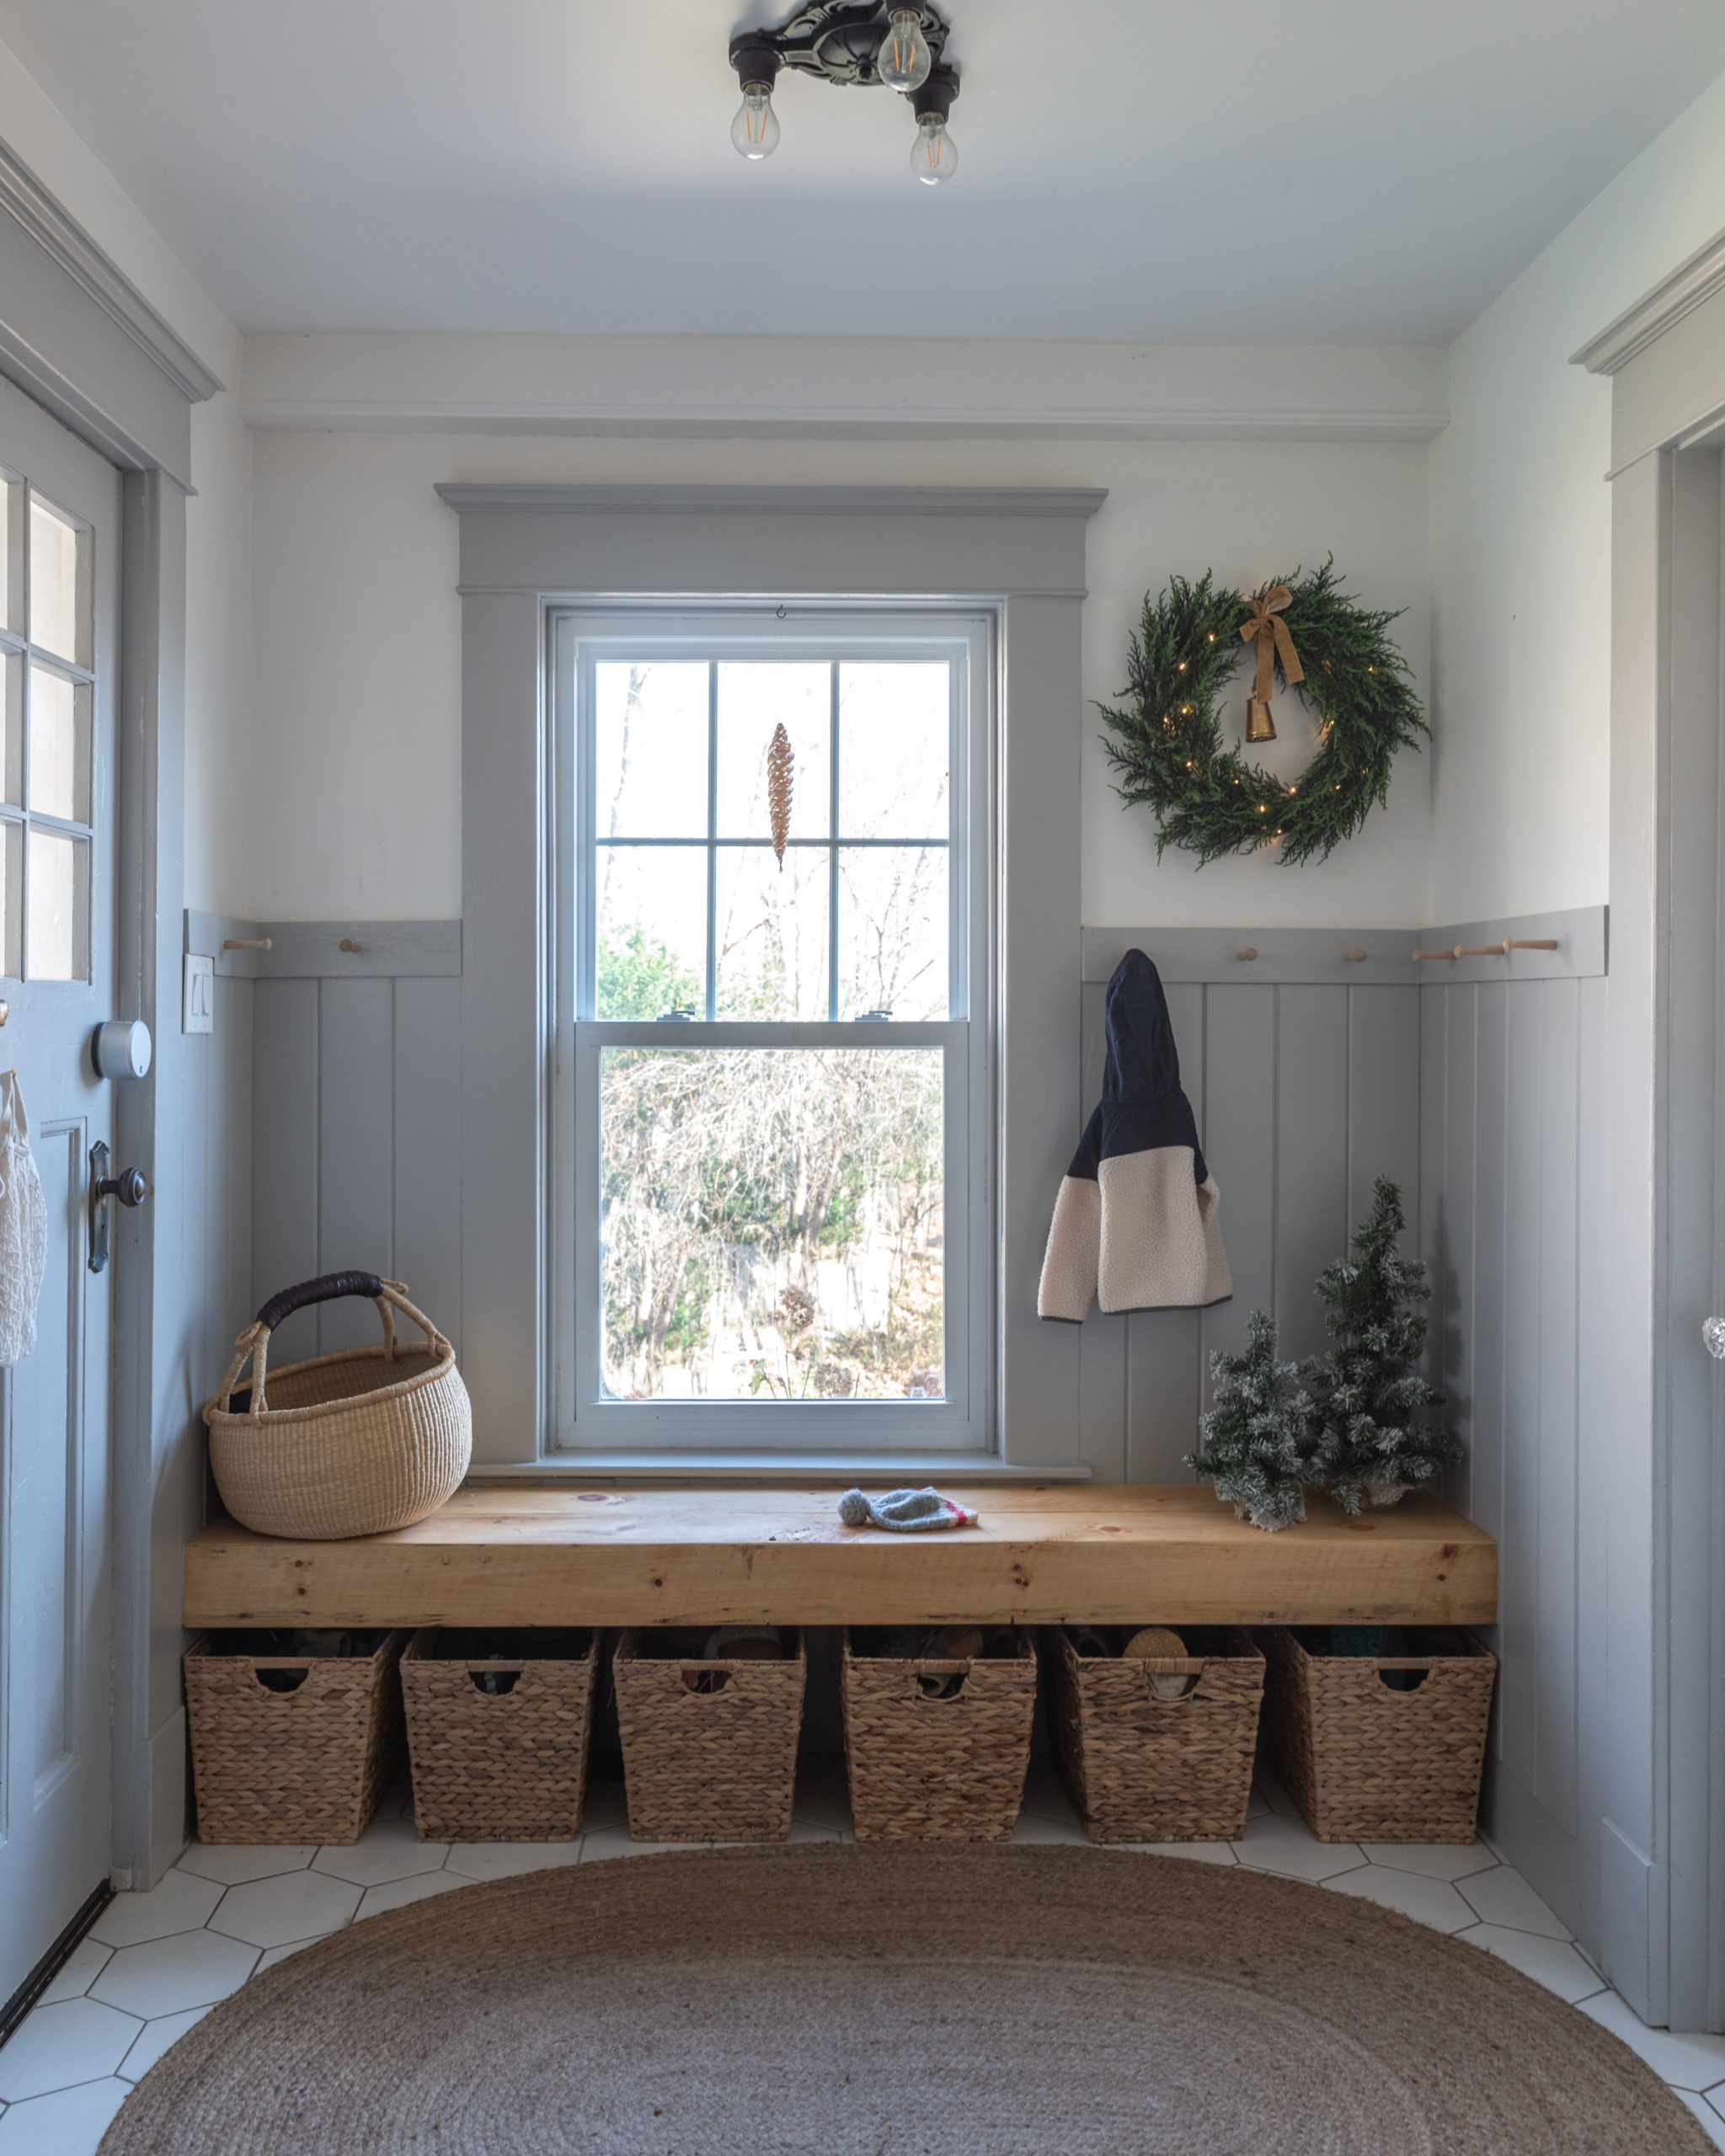 The Wild decoelis | 2020 Holiday Home Tour | Mud room with gray wainscotting and shaker peg rail, floating wood bench, baskets for shoes, mini trees and cedar wreath, traditional farmhouse